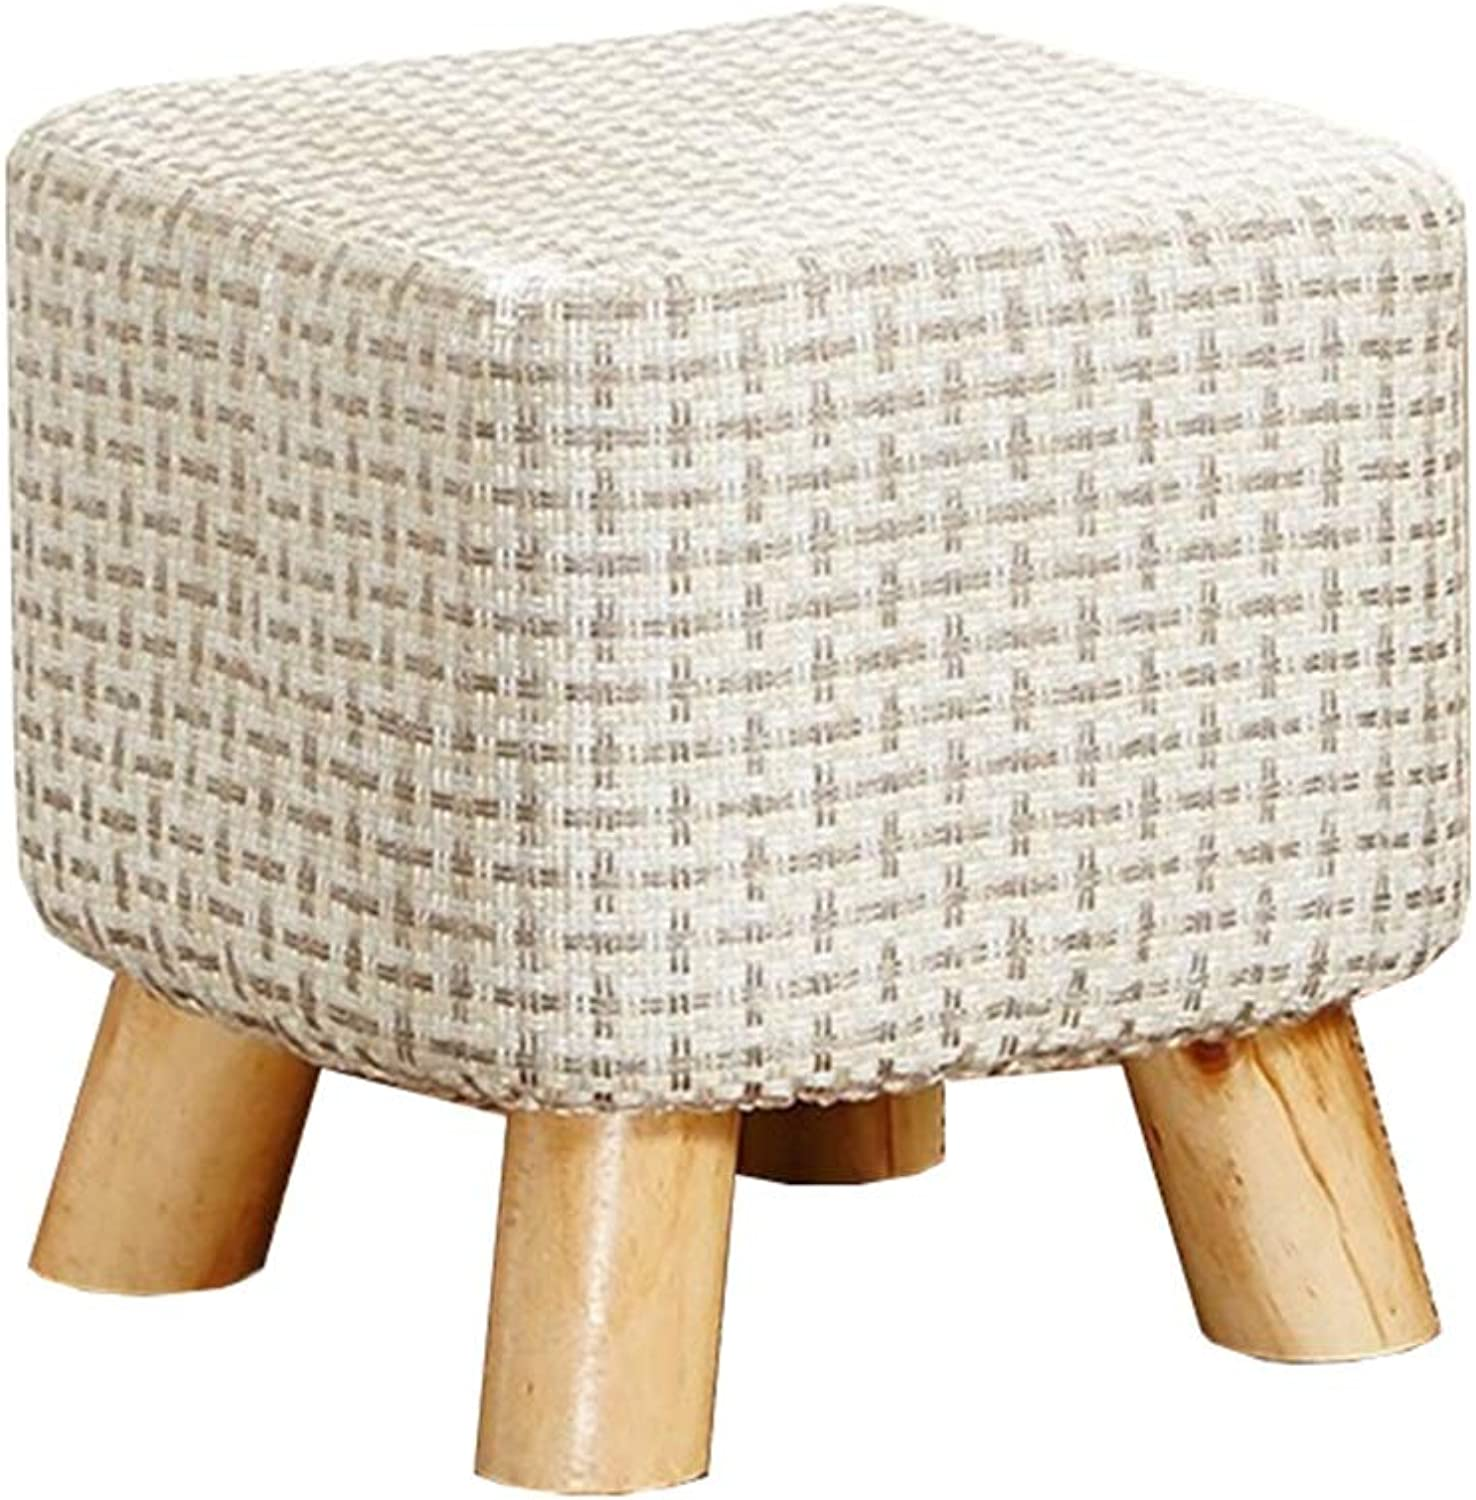 Small Stool-Solid Wood shoes Bench Linen Sofa Stool Fabric Square Stool Removable and Washable Home Bench LEBAO (color   Lattice, Size   30  30cm)